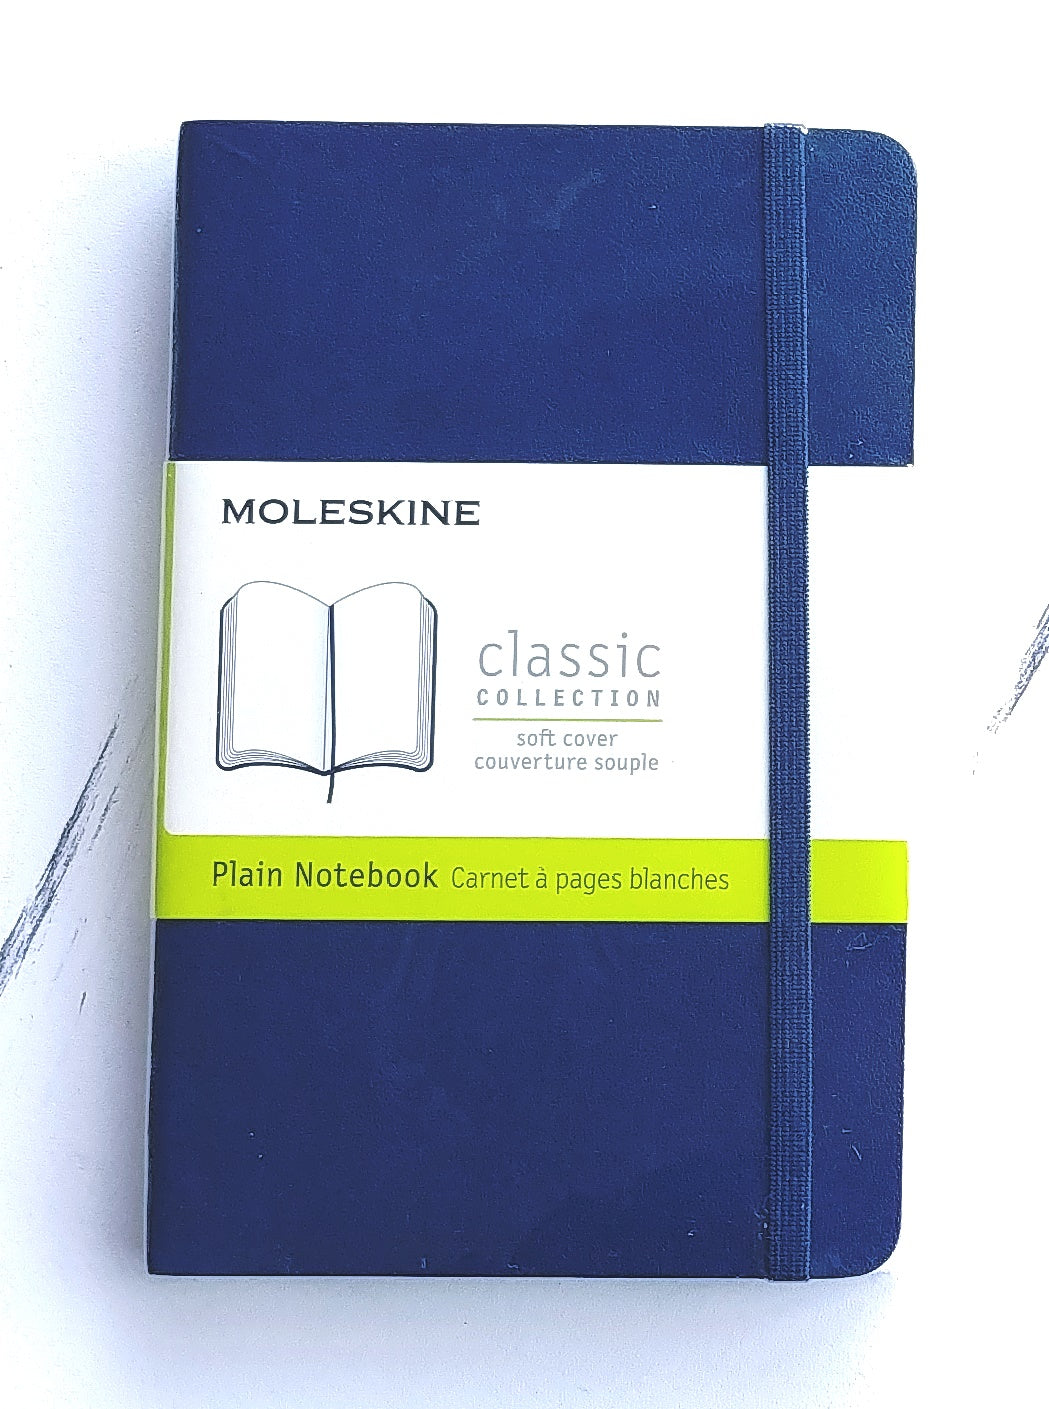 Moleskine Pocket Notebook- Blank Softcover